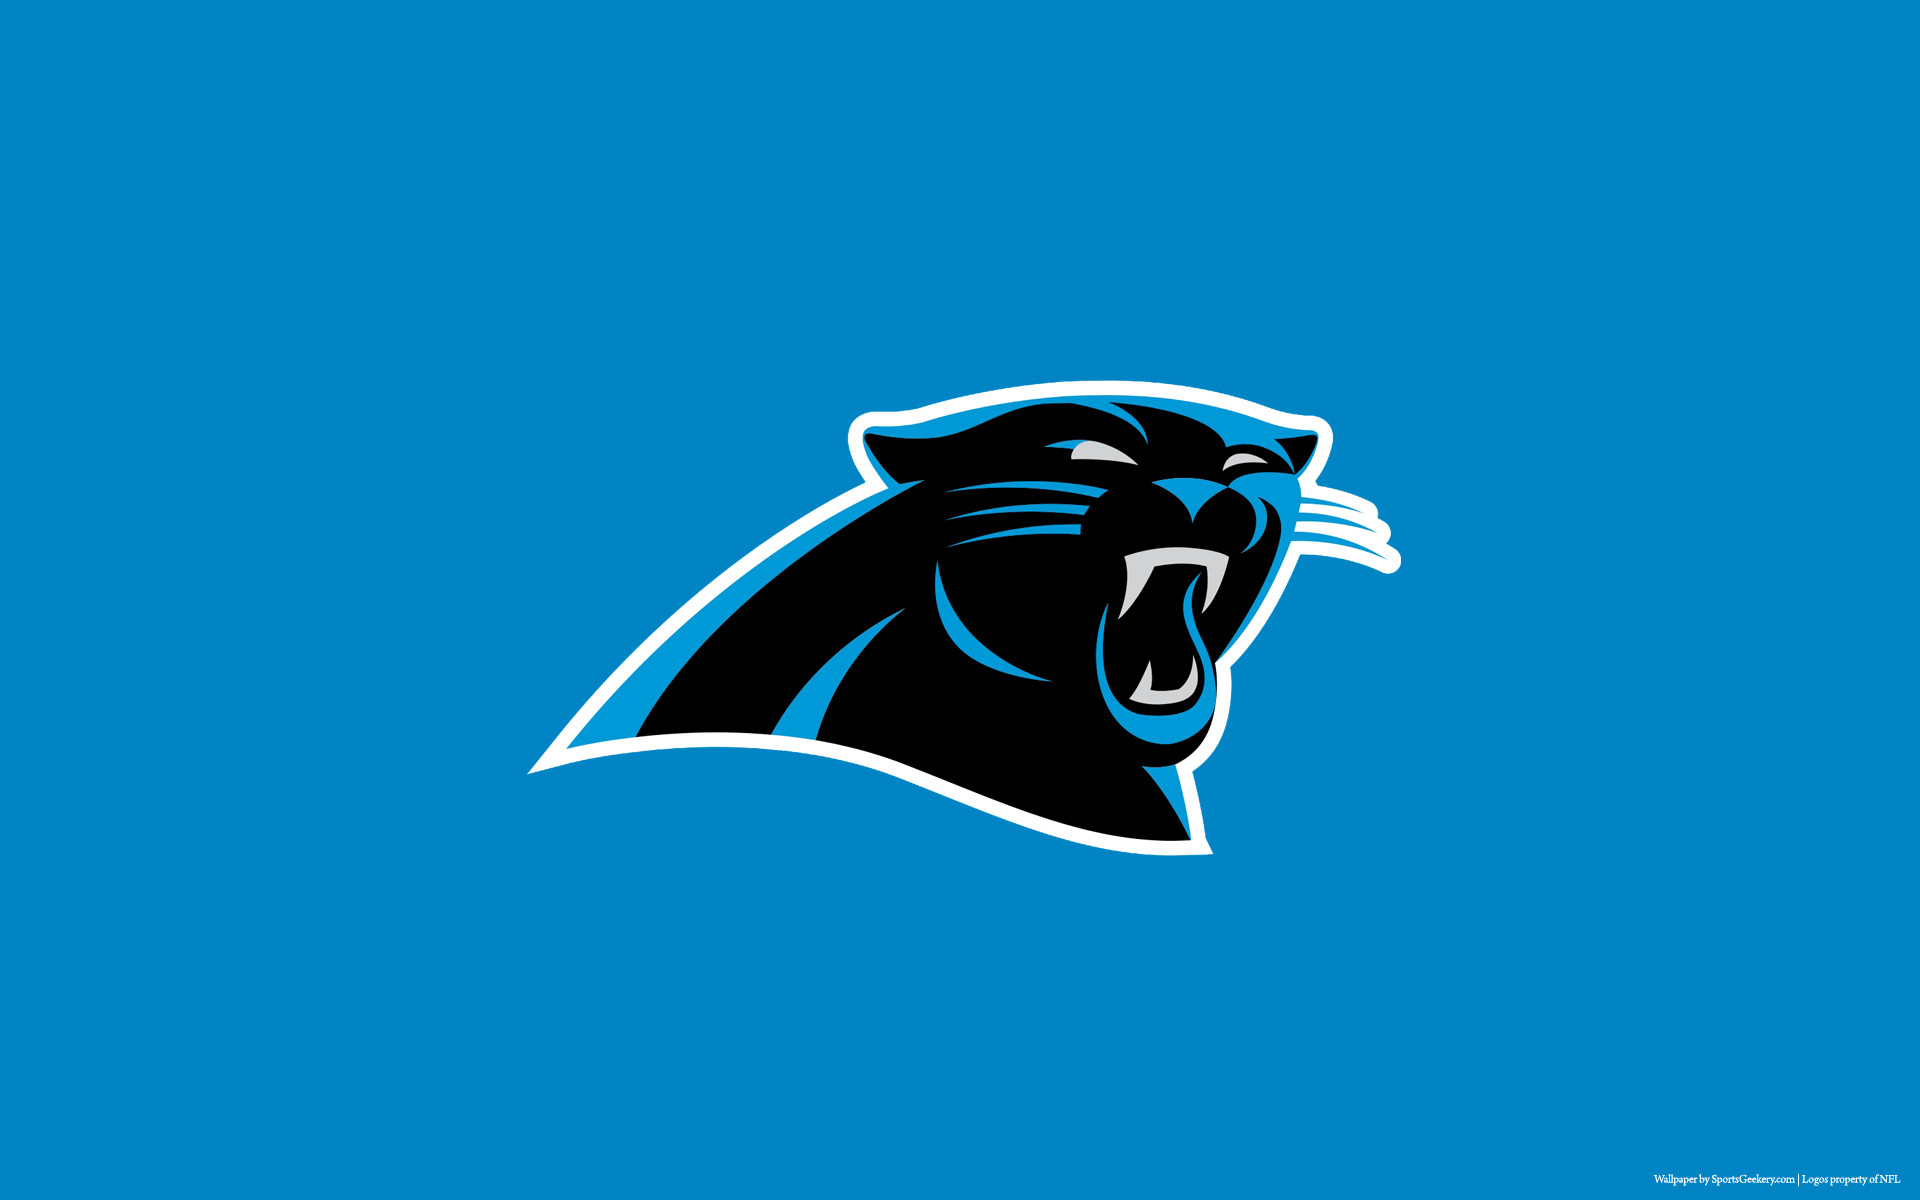 1920x1200 Carolina Panthers Wallpaper by on | HD Wallpapers | Pinterest | Carolina  panthers wallpaper and Wallpaper